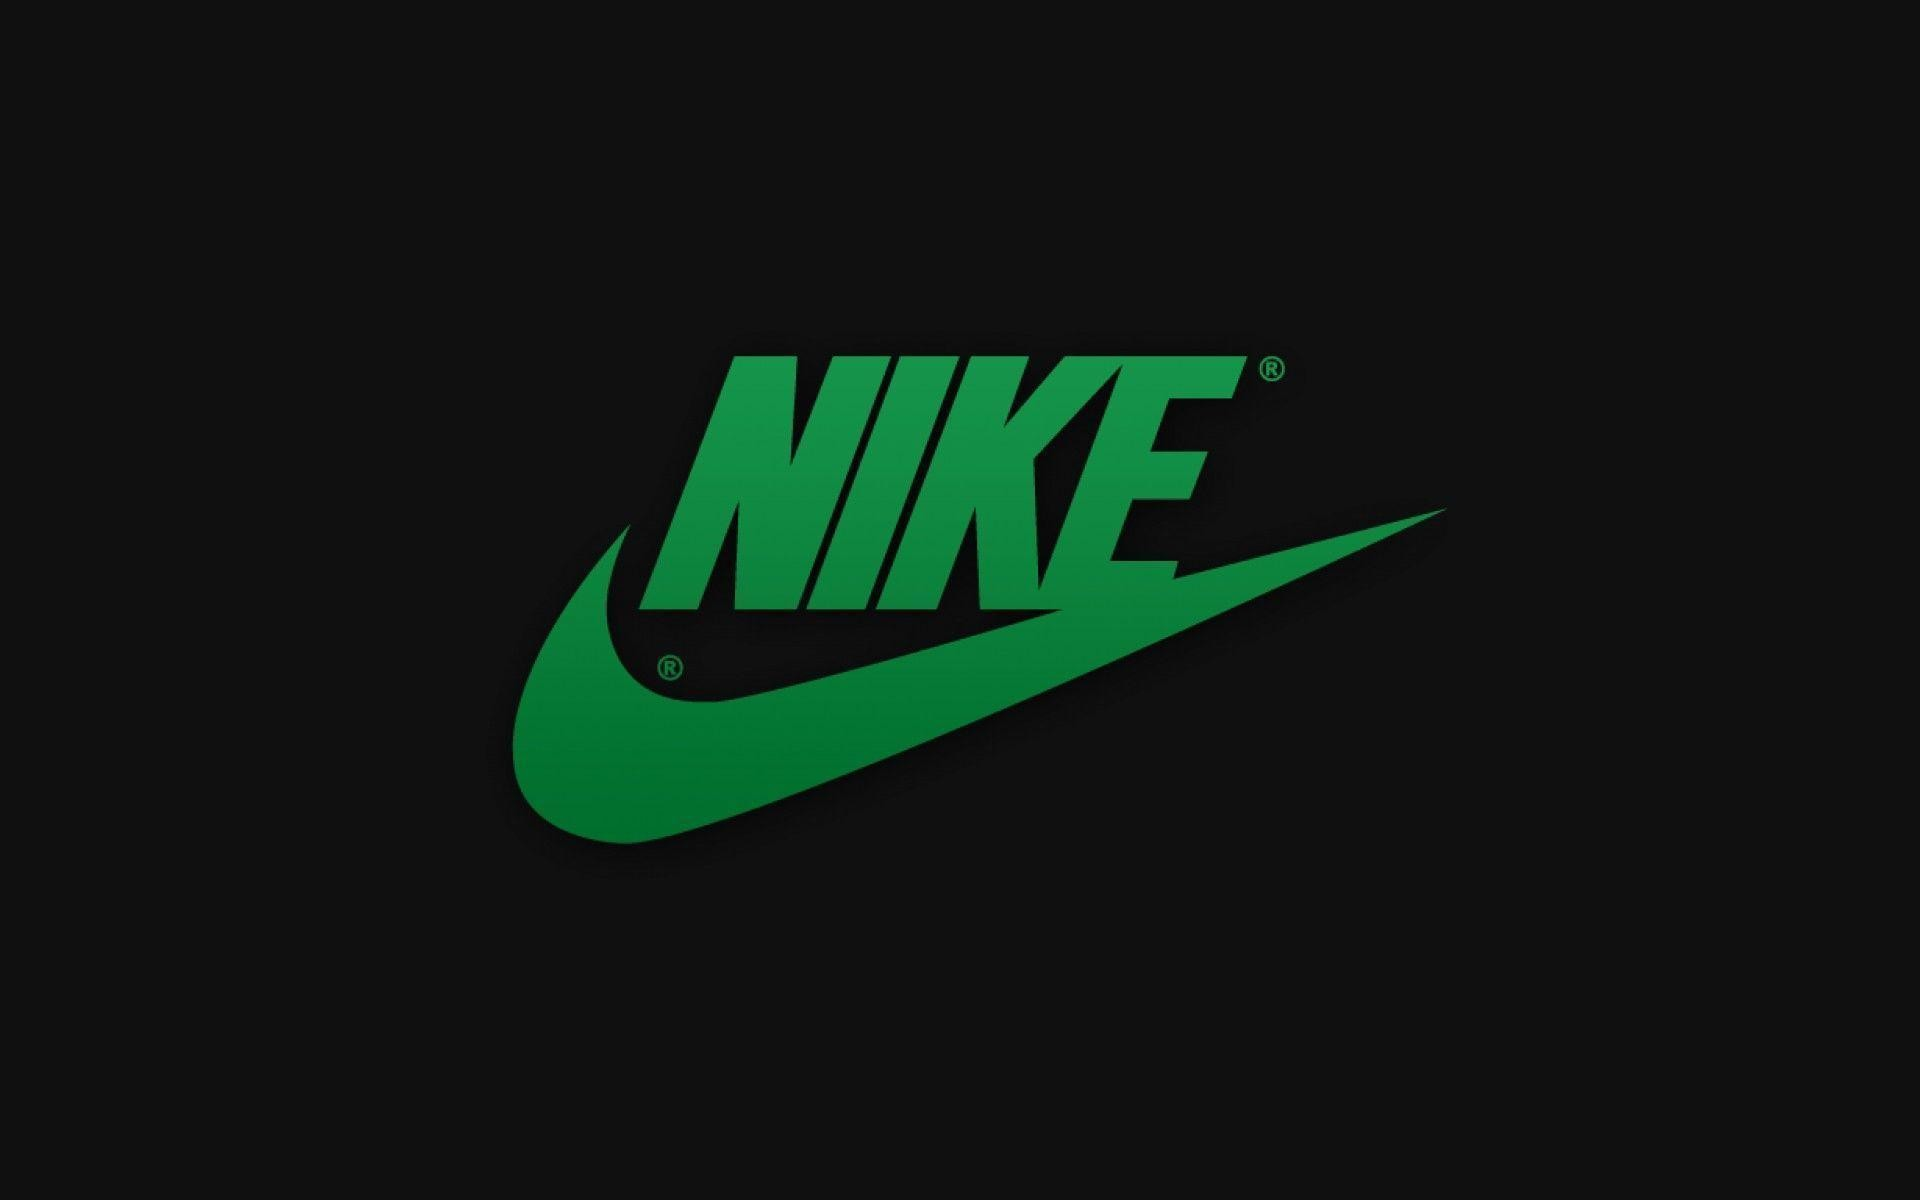 green nike wallpaper 60 images rh getwallpapers com Just Do It Nike Logo Just Do It Nike Logo